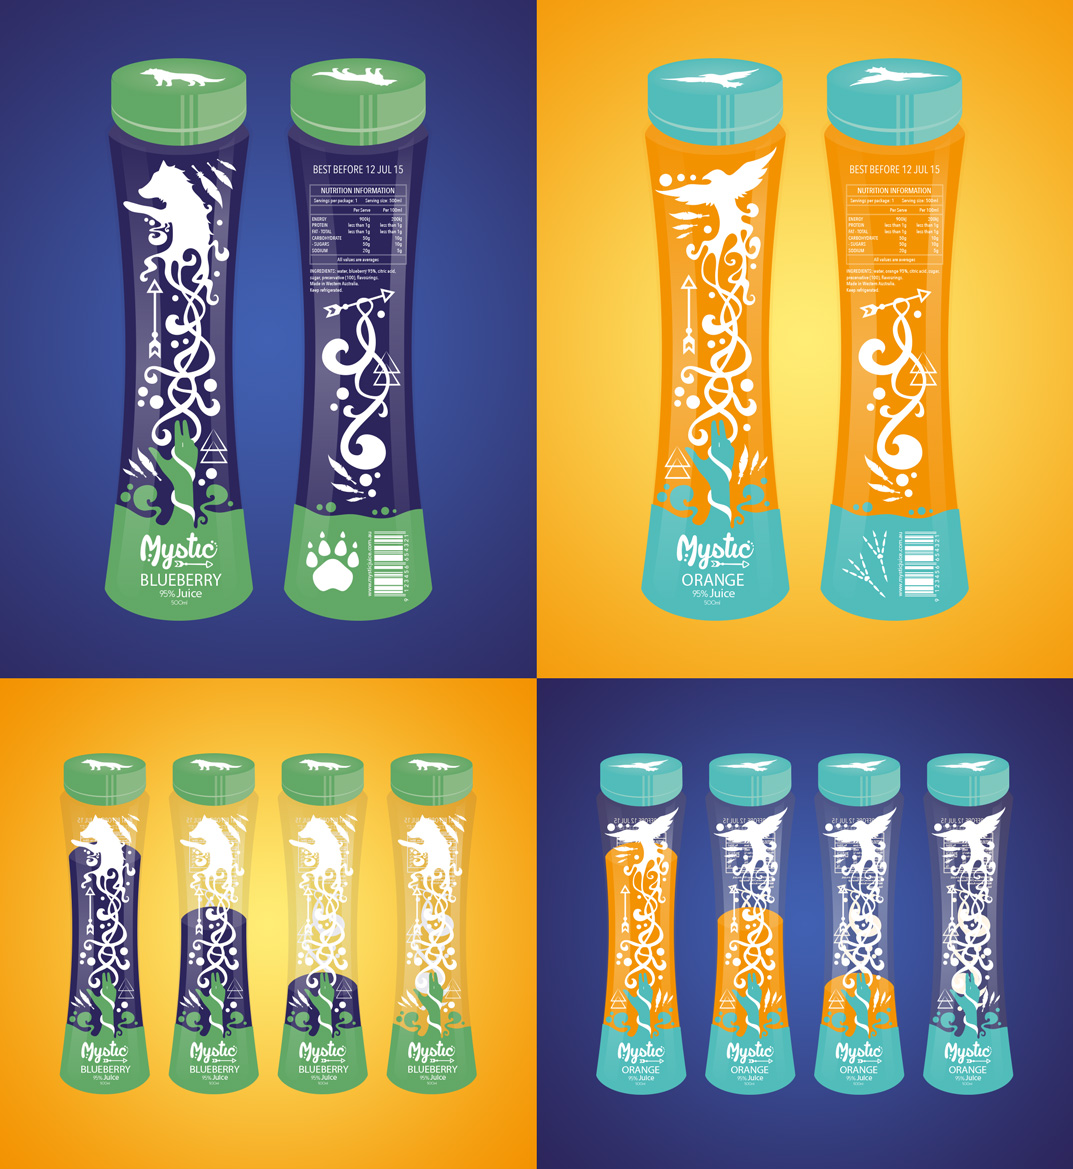 Juice bottle design. Two flavours - Blueberry and Orange. Native American atmosphere. Each animal represents a flavour and spirit guide. For people on the go, designed tall and slim for firm grip. Uni assignment. (2014)